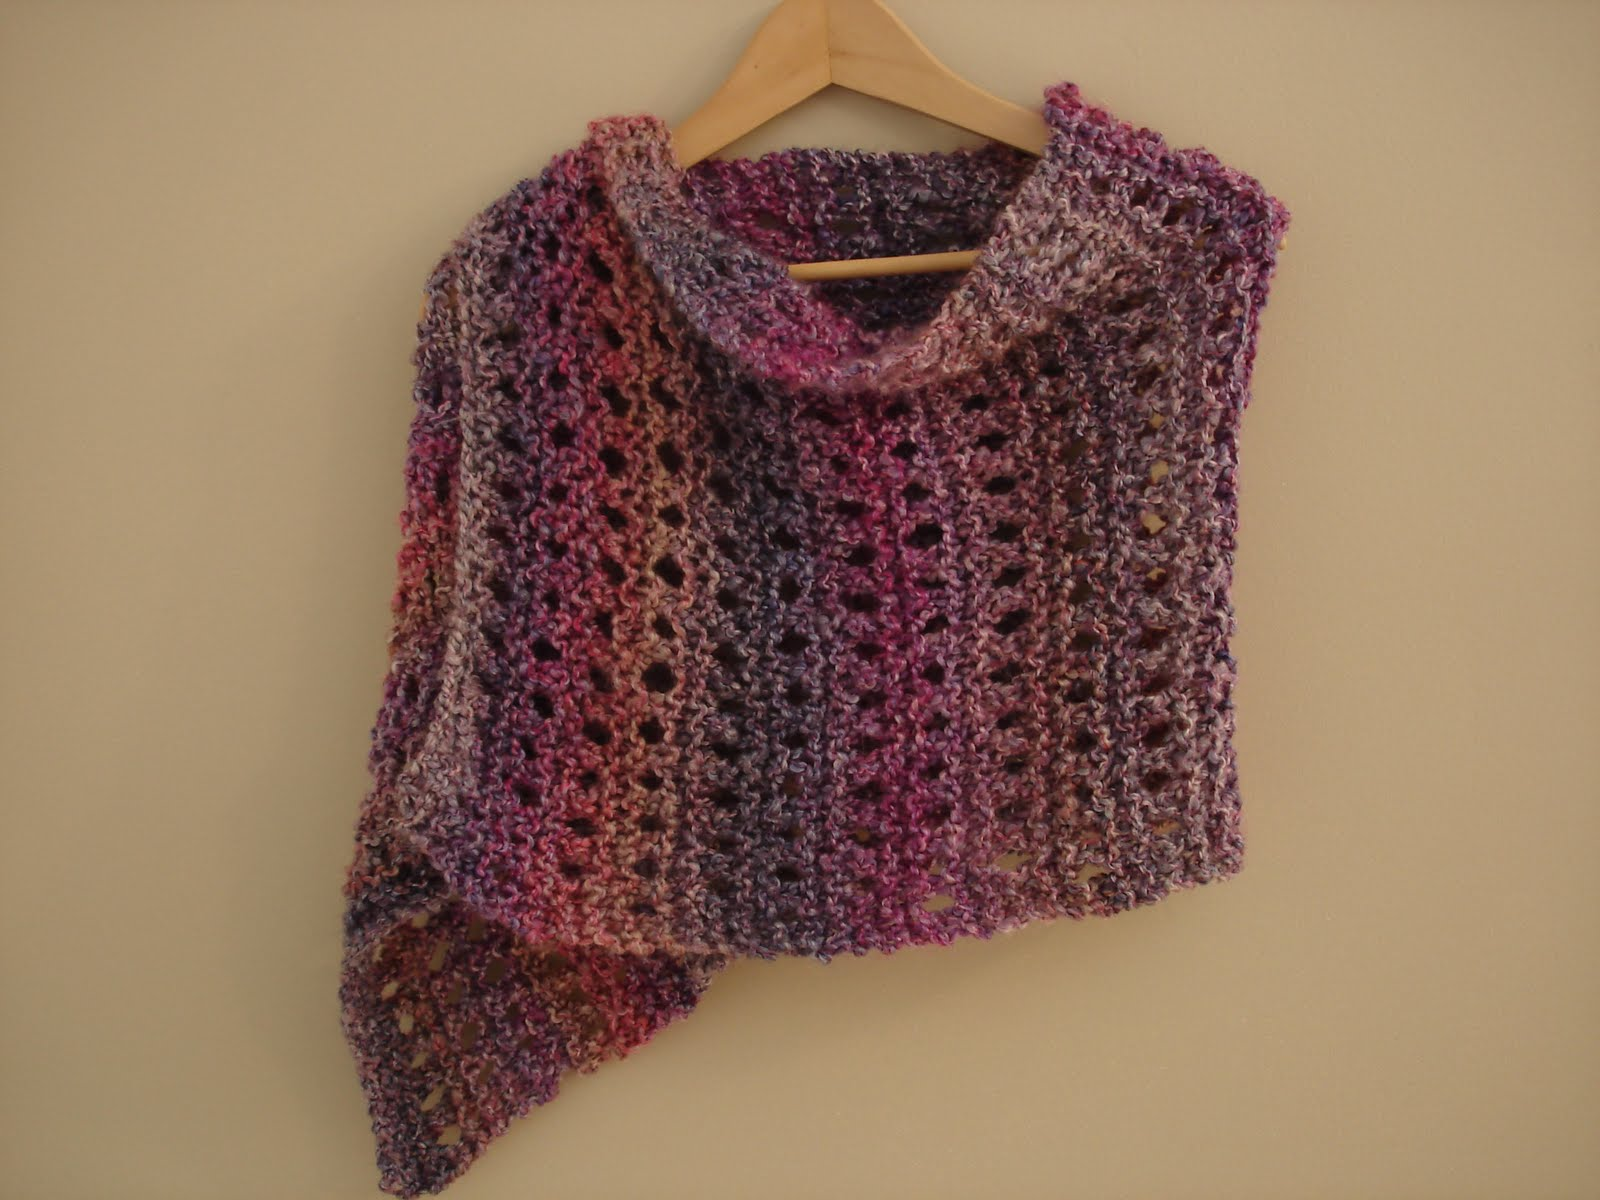 Knitting Wheel Casting Off : Fiber flux: free knitting pattern a peaceful shawl!